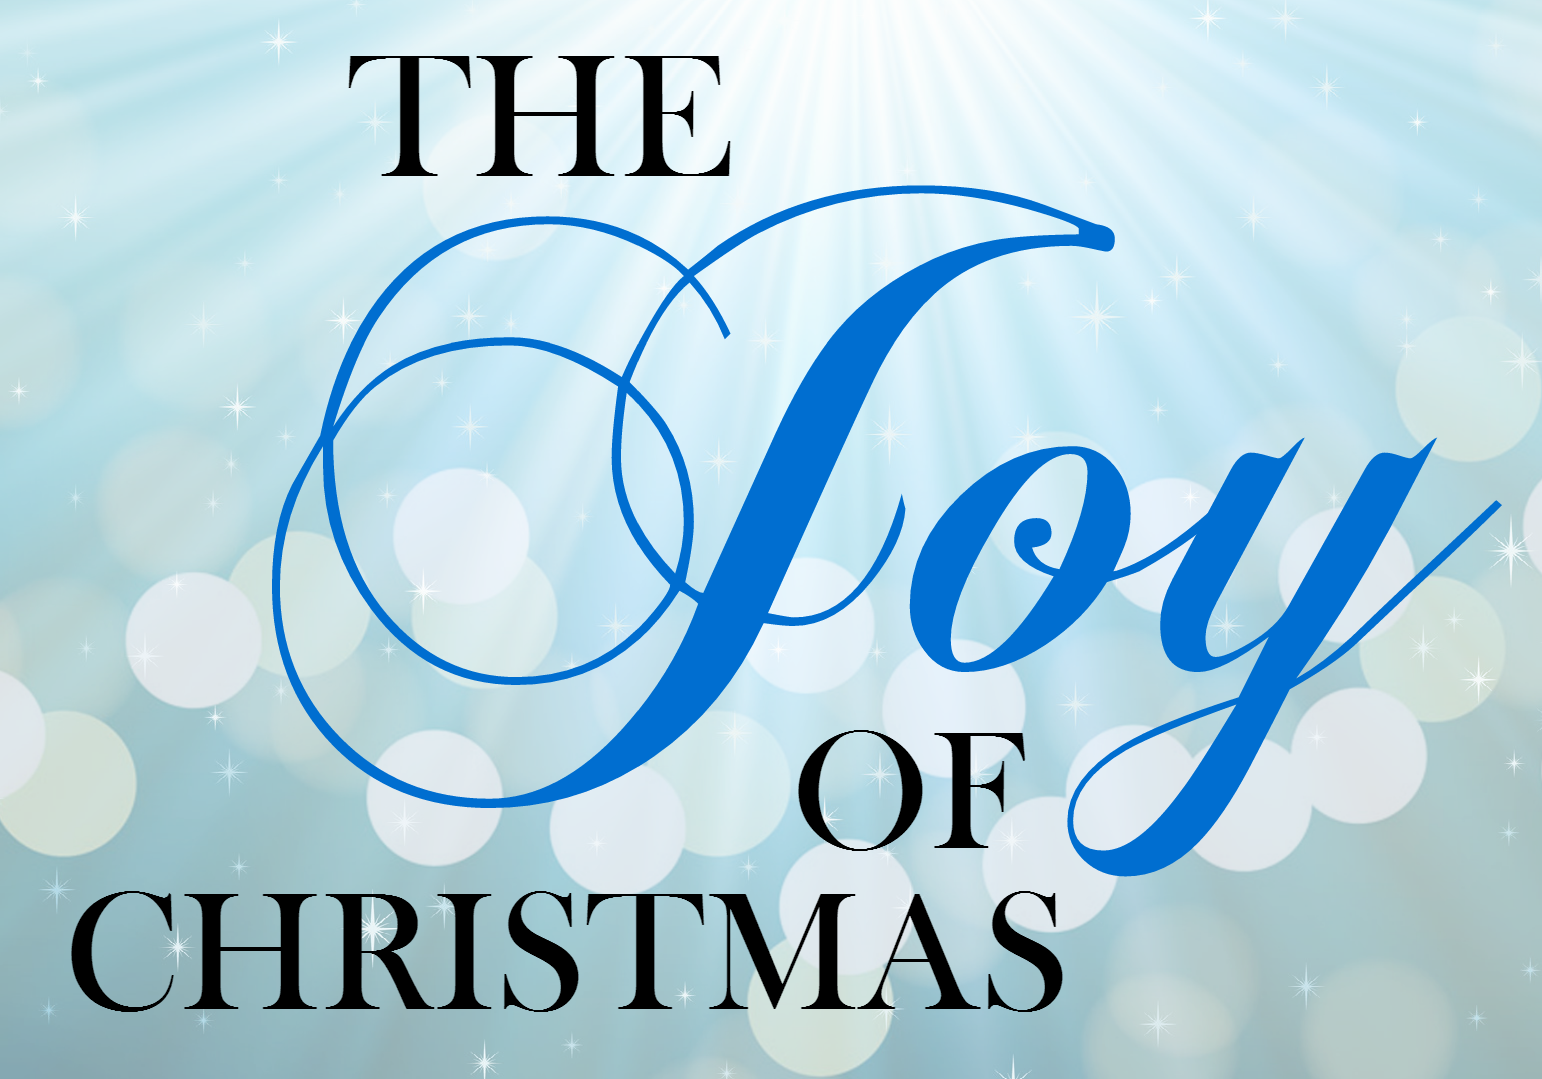 the joys of celebrating christmas Get this from a library a family christmas : celebrating the joys of the season [arlene hamilton stewart] -- presents ideas and inspiration for gift giving, decorating and traditional celebrating of christmas.